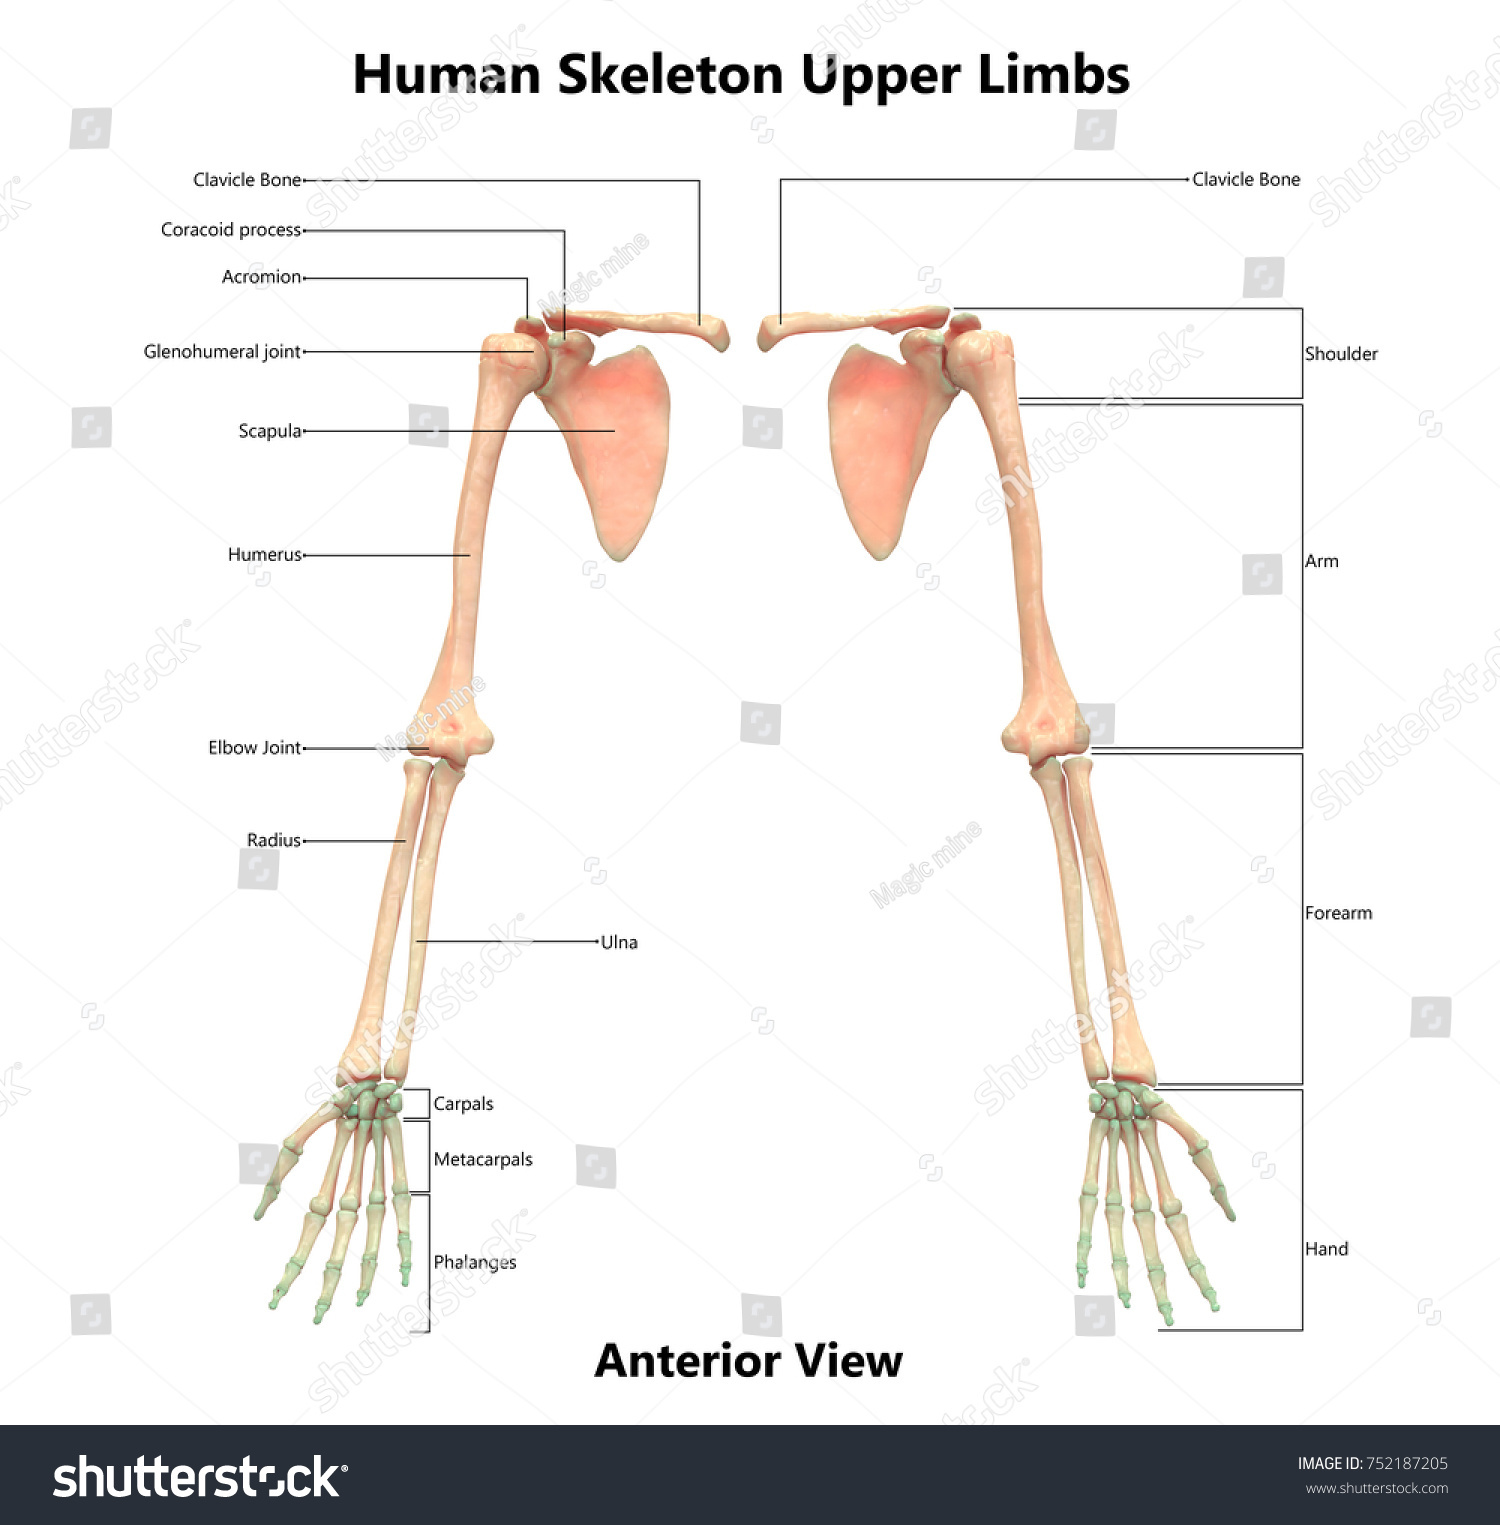 Upper limb anatomy questions and answers 1955169 - follow4more.info